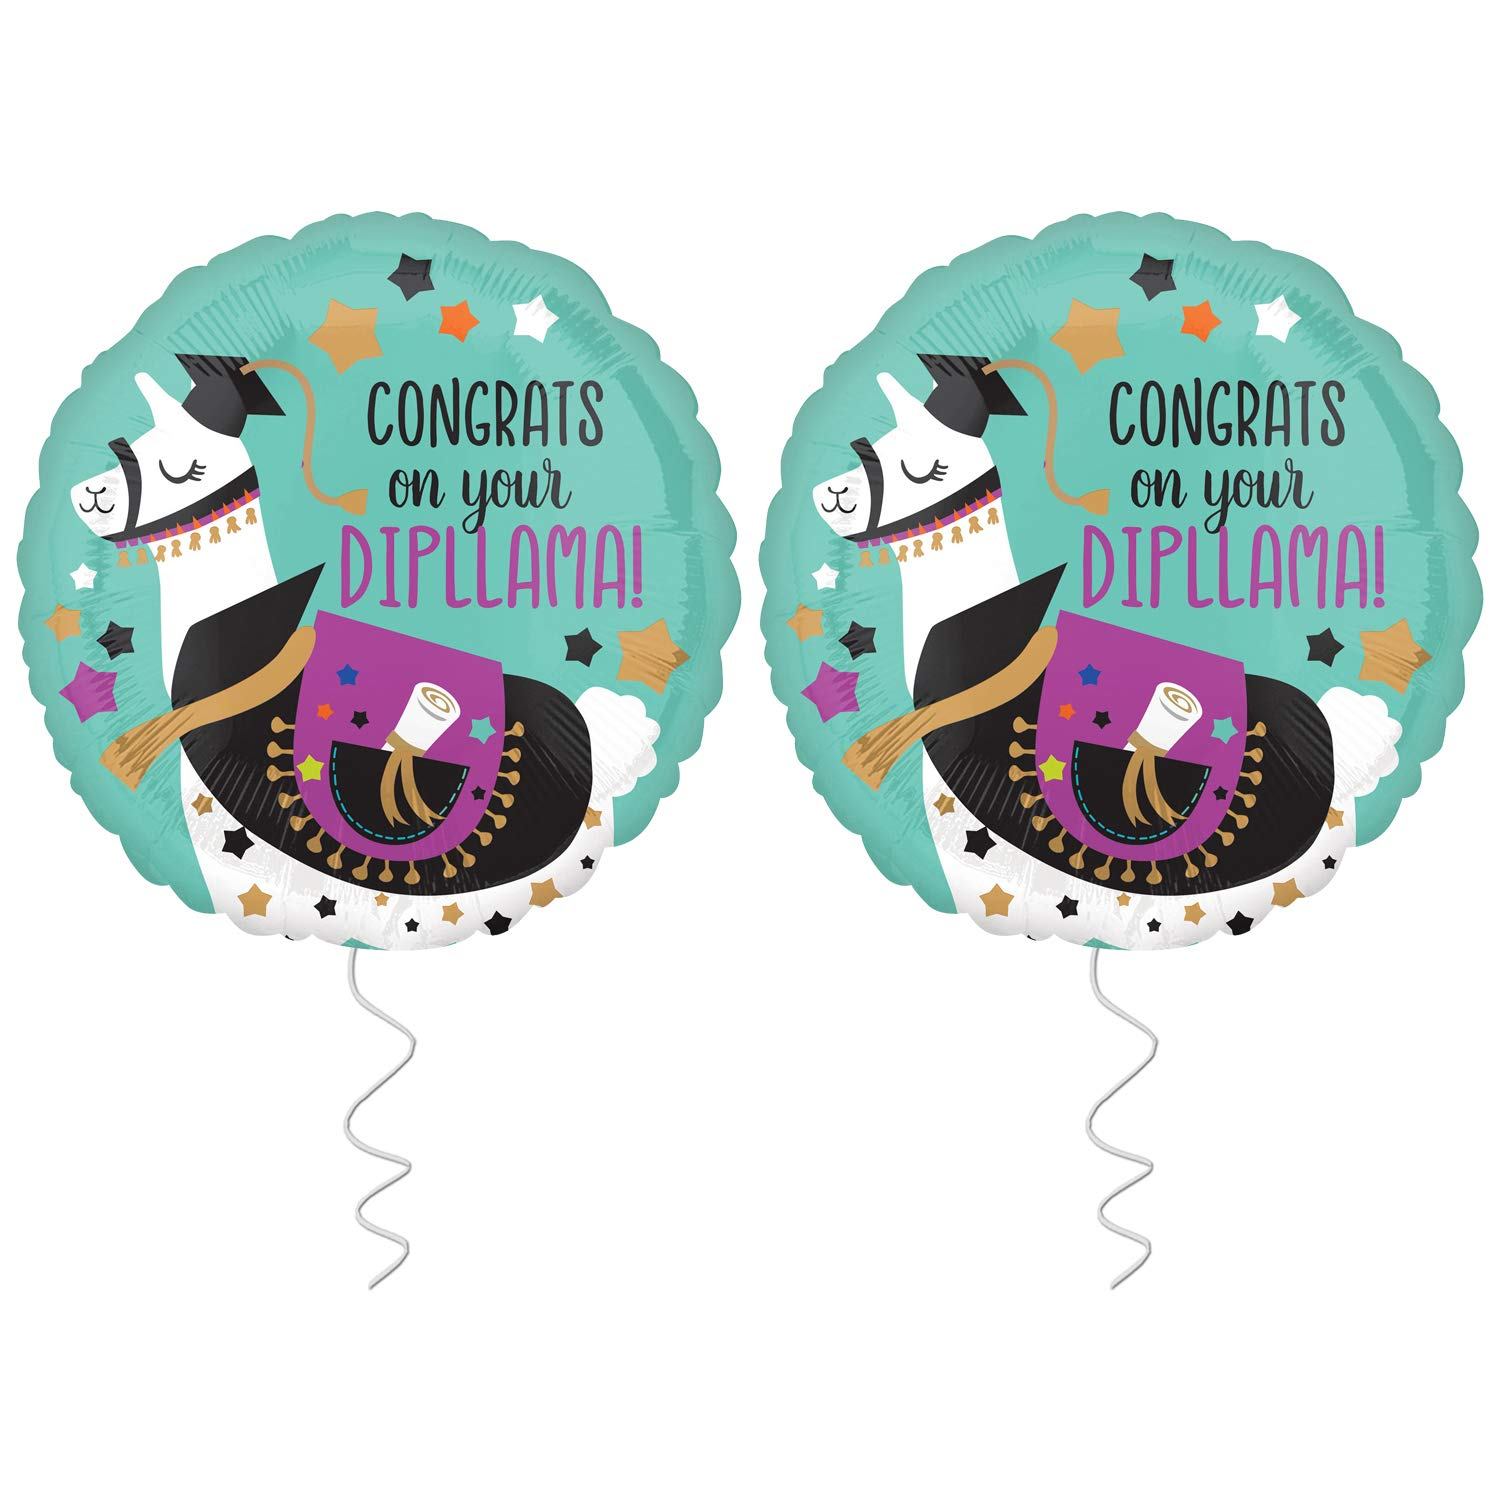 Graduation Balloon for Grad Party Congrats on Your Diploma Graduation Balloons Foil Mylar Graduation Helium Balloons for Graduation Party Supplies 2019 Graduation Decorations 2019 Pack of 2